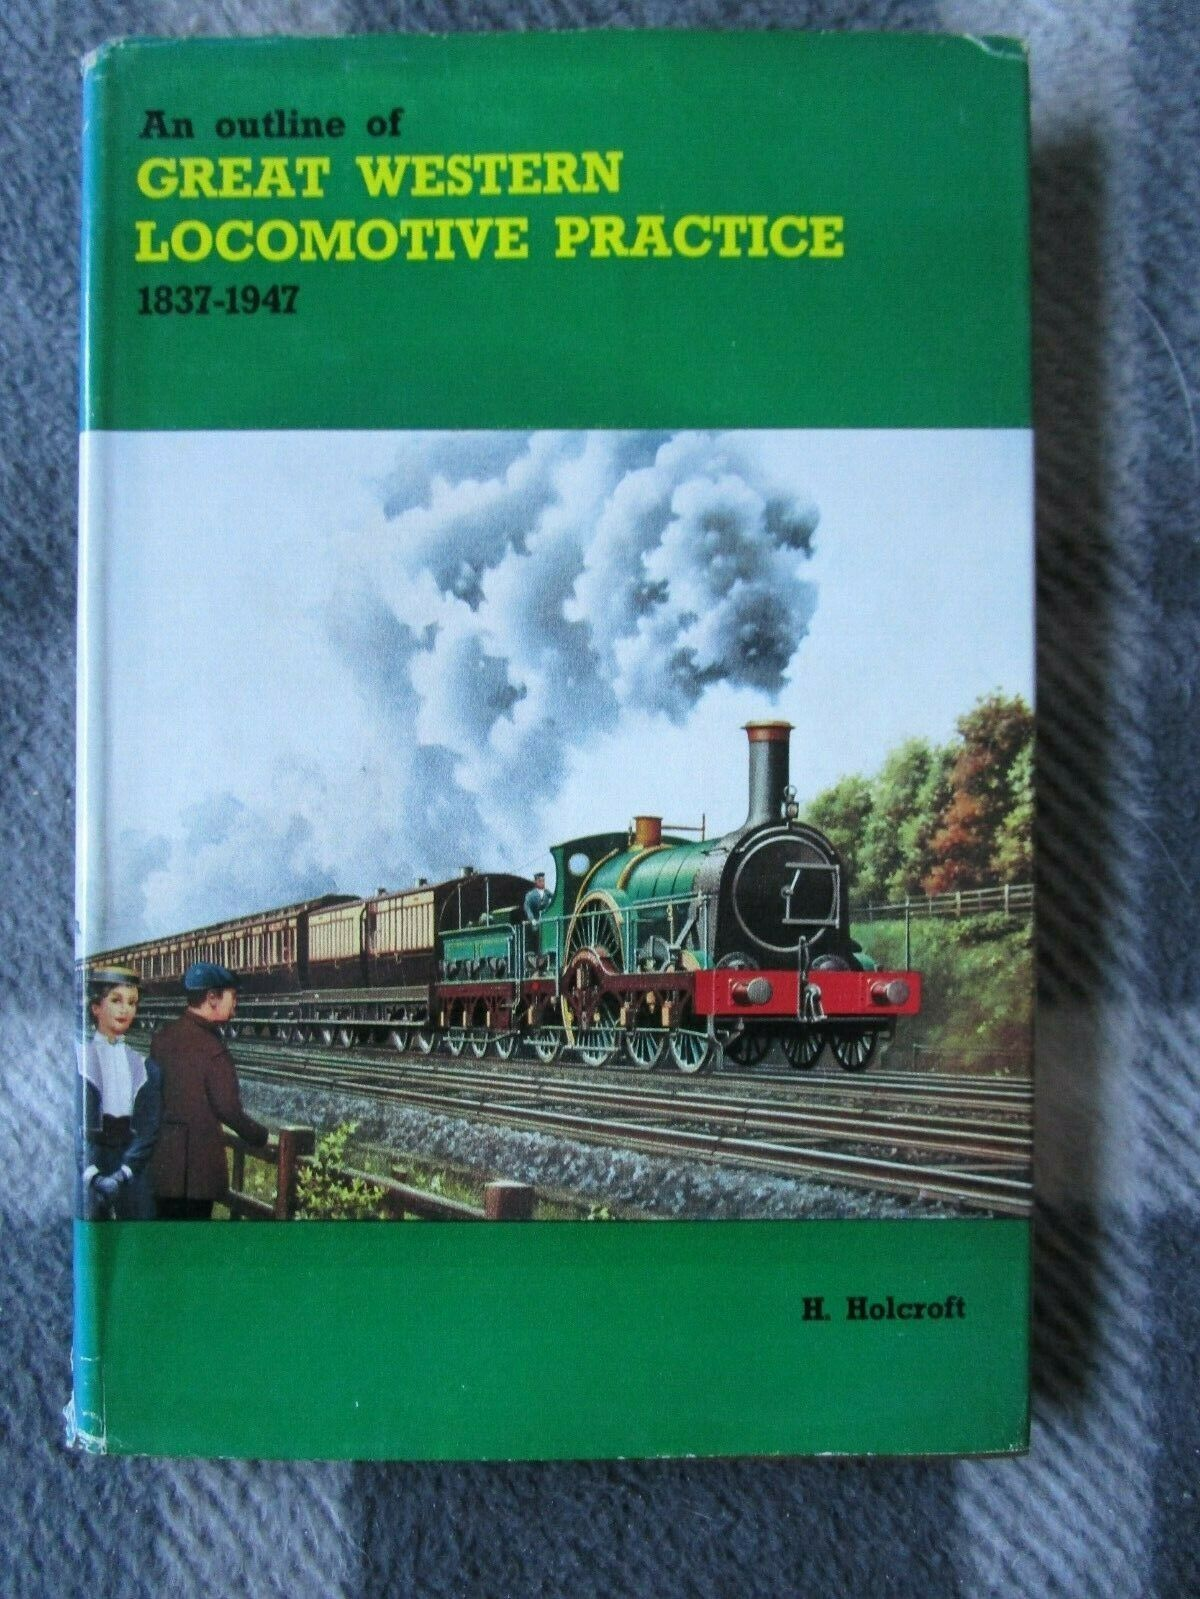 AN OUTLINE OF GREAT WESTERN LOCOMOTIVE PRACTICE 1837-1947 ~ Holcroft